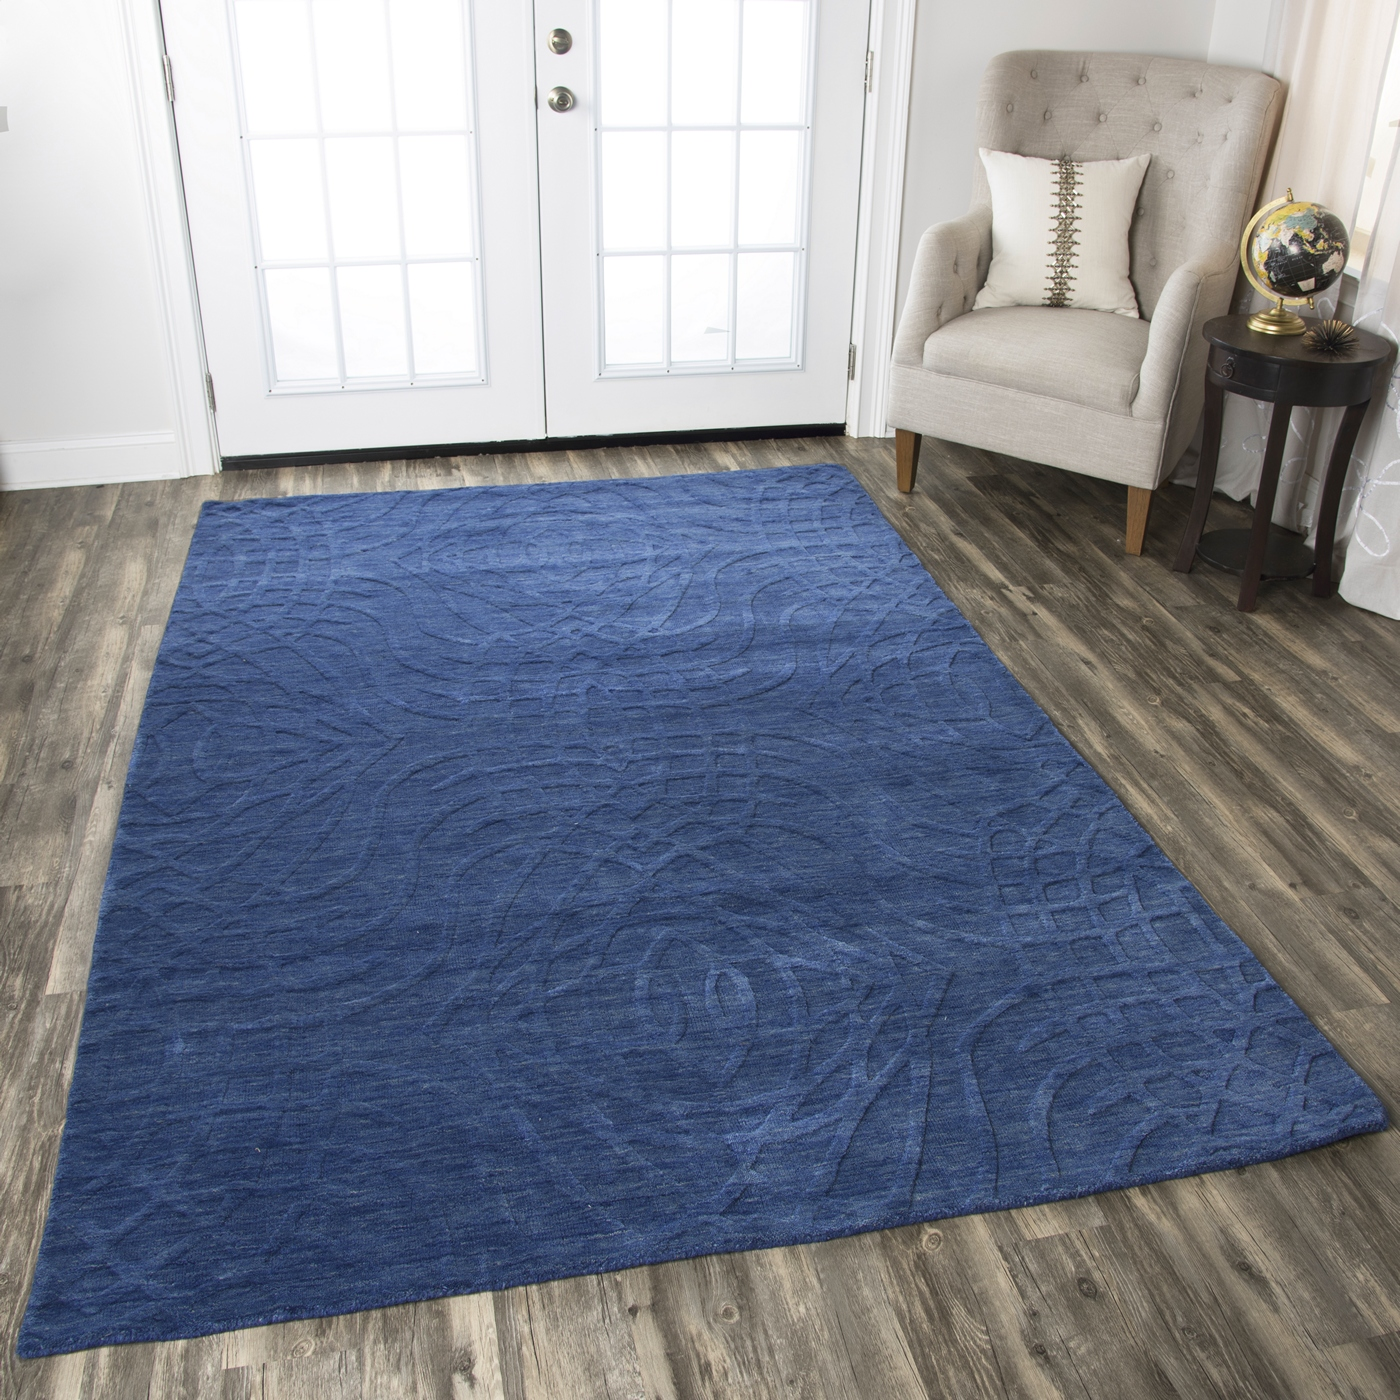 10 X 14 Area Rugs Uptown Abstract Ripple Pattern Wool Area Rug In Blue 10